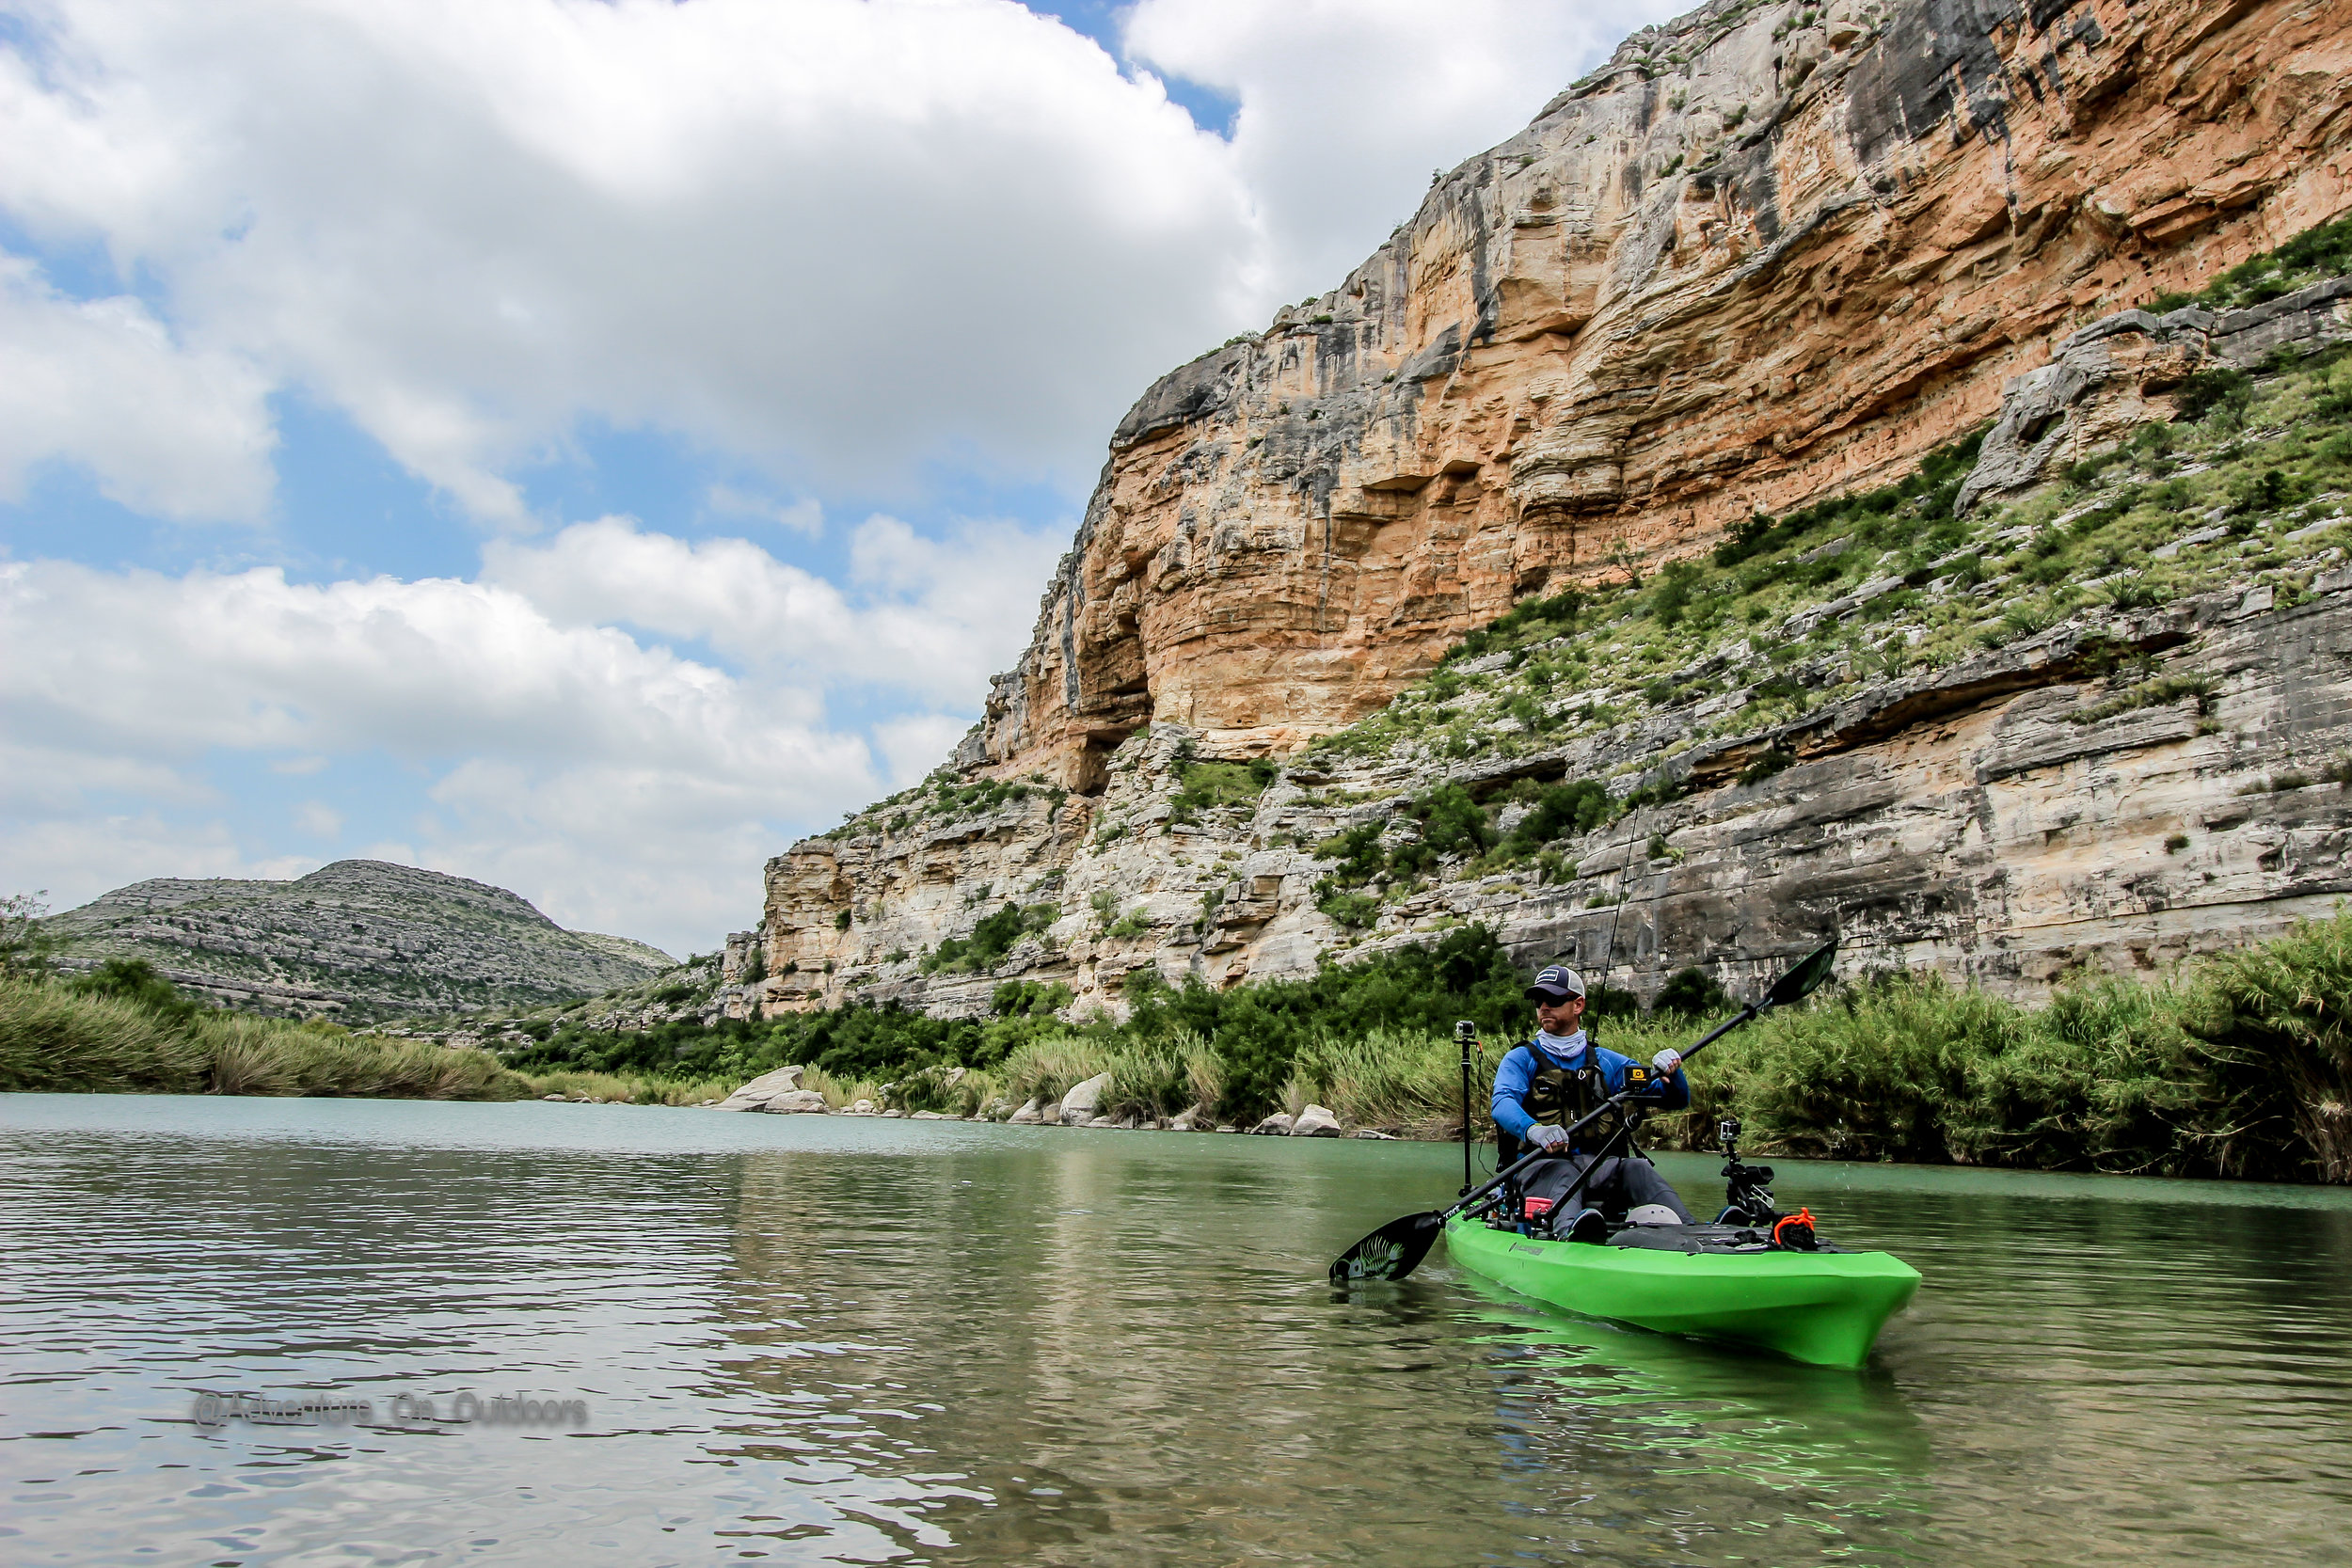 Robert Field on our most recent trip down the Pecos.